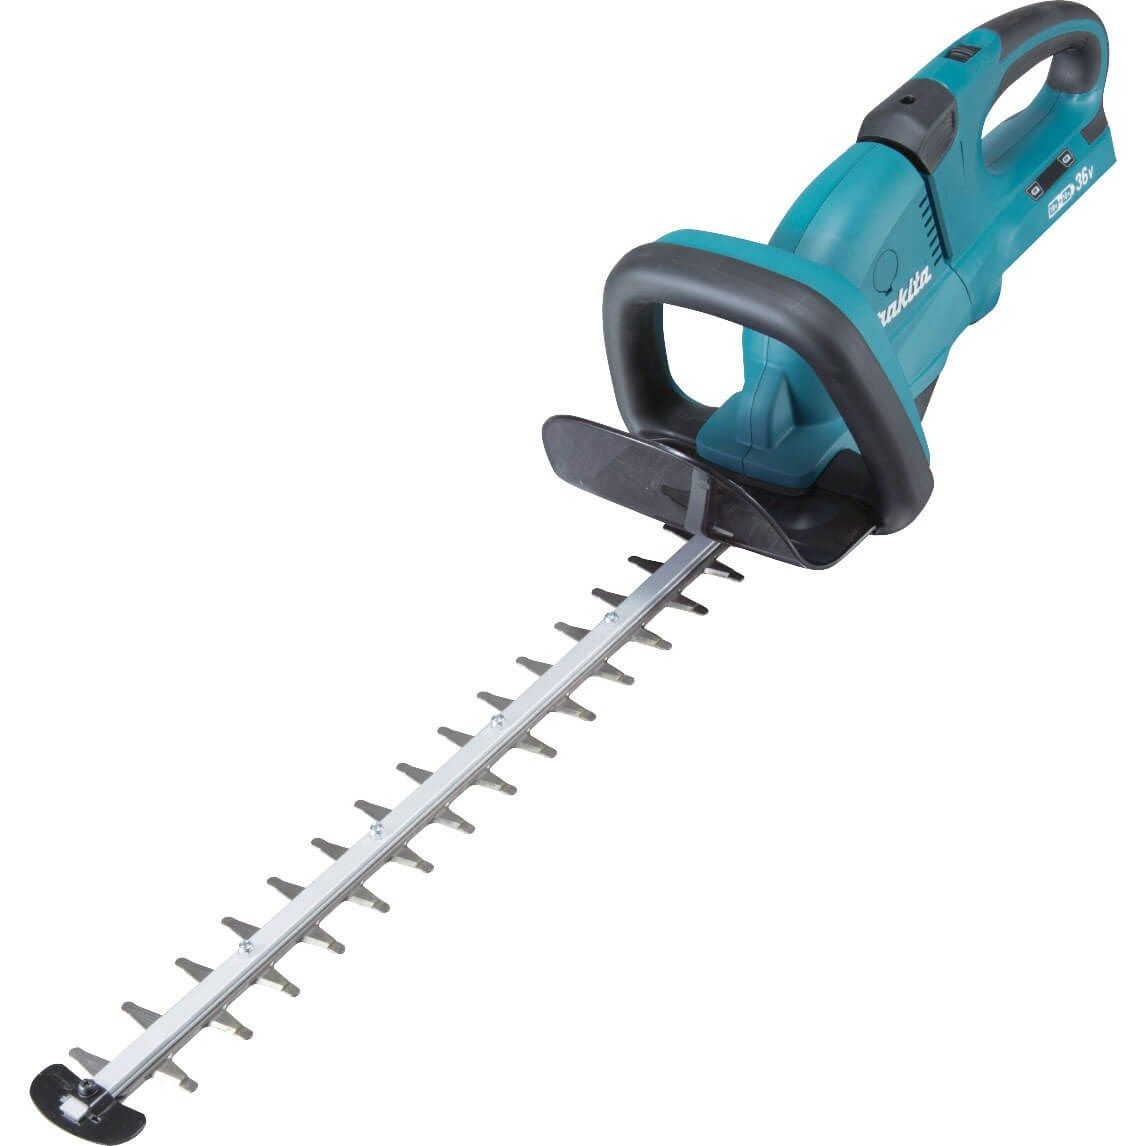 Makita Duh551 Twin 18v Cordless Lxt Hedge Trimmer